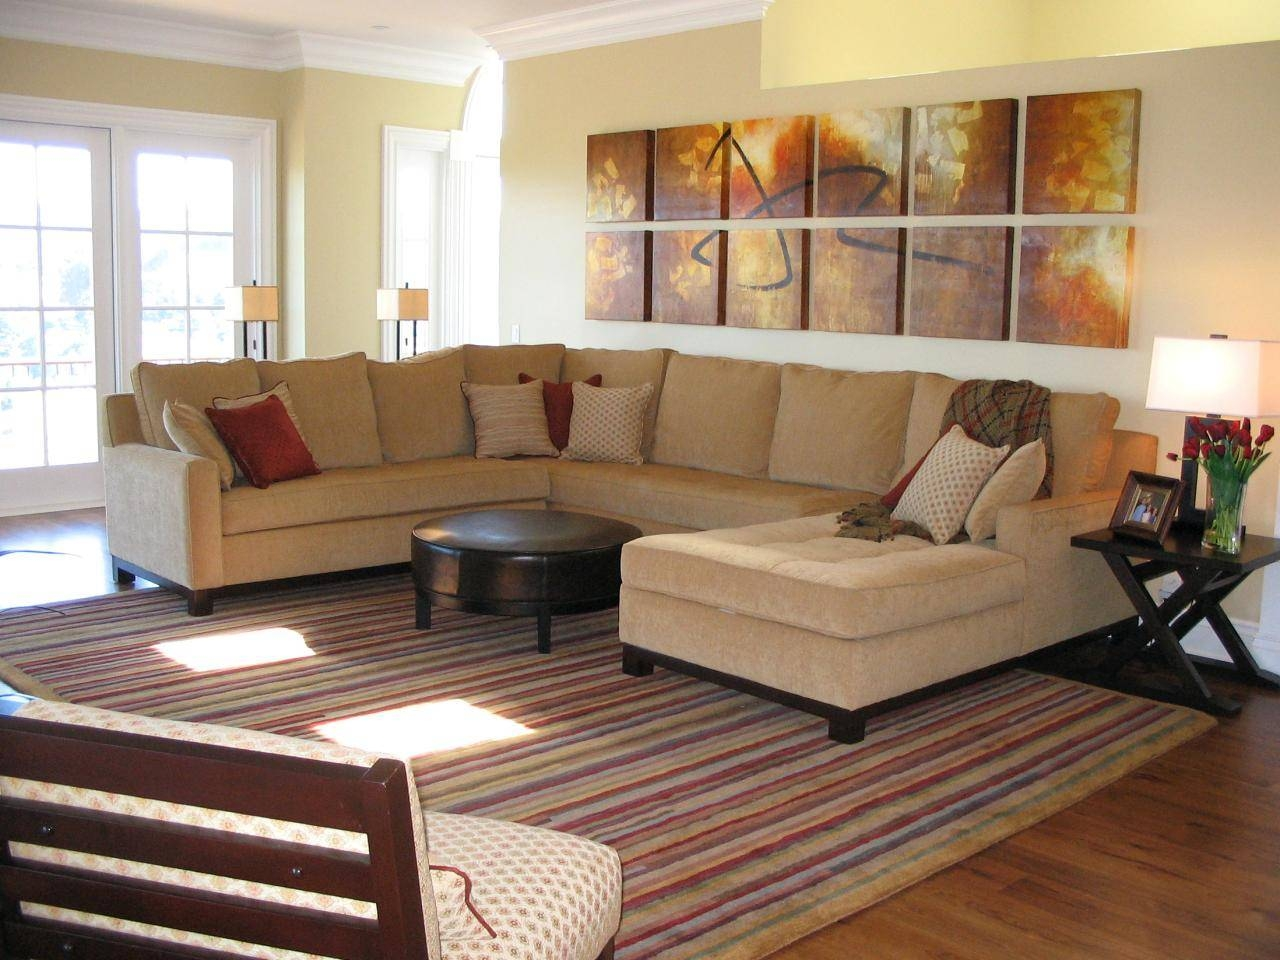 Furniture. Living Room With White Velvet Sectional Sofa Bed pertaining to Extra Large Sectional Sofas (Image 7 of 30)